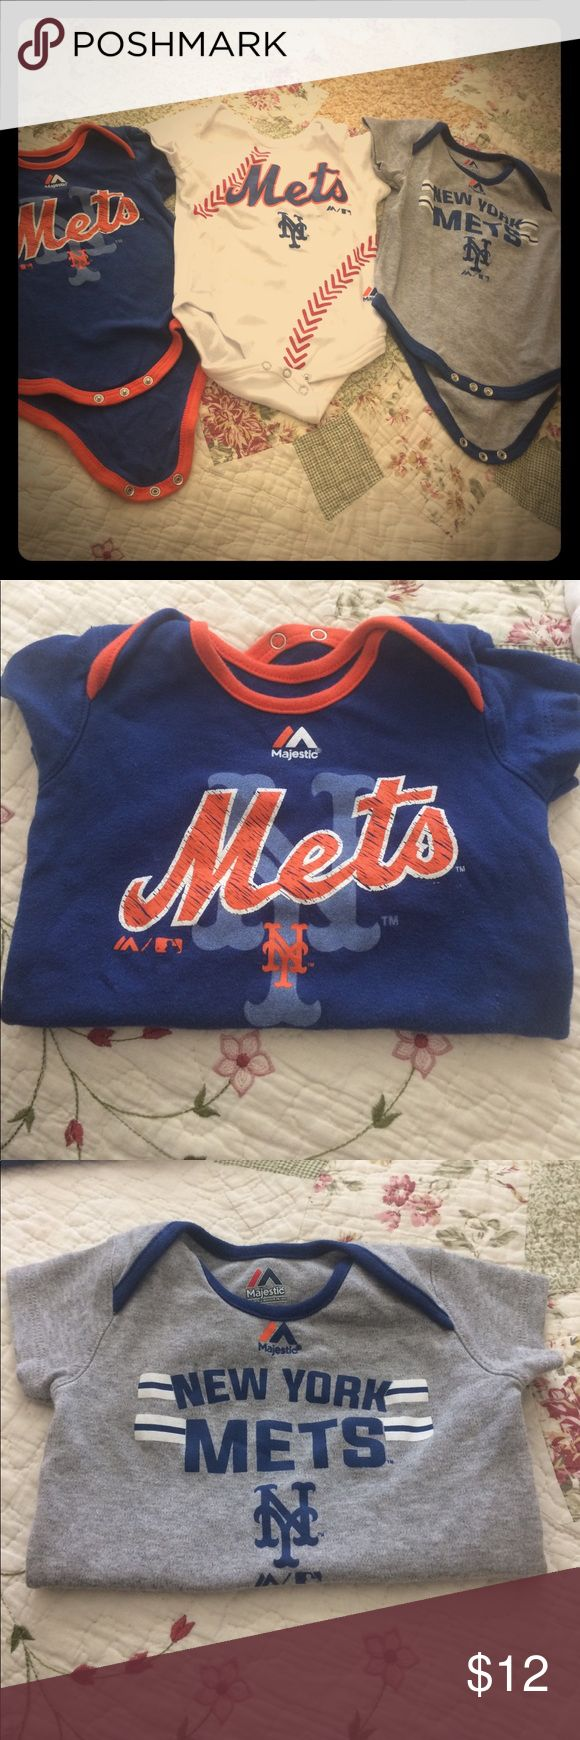 3 Mets onsies! ⚾️ Adorable mets onsies, worn once two in perfect condition...note last pic for small manufacturing damage on that one onsie. Size 6-9 months, perfect for a true lil mets fan! LETS GO METS! Majestic One Pieces Bodysuits